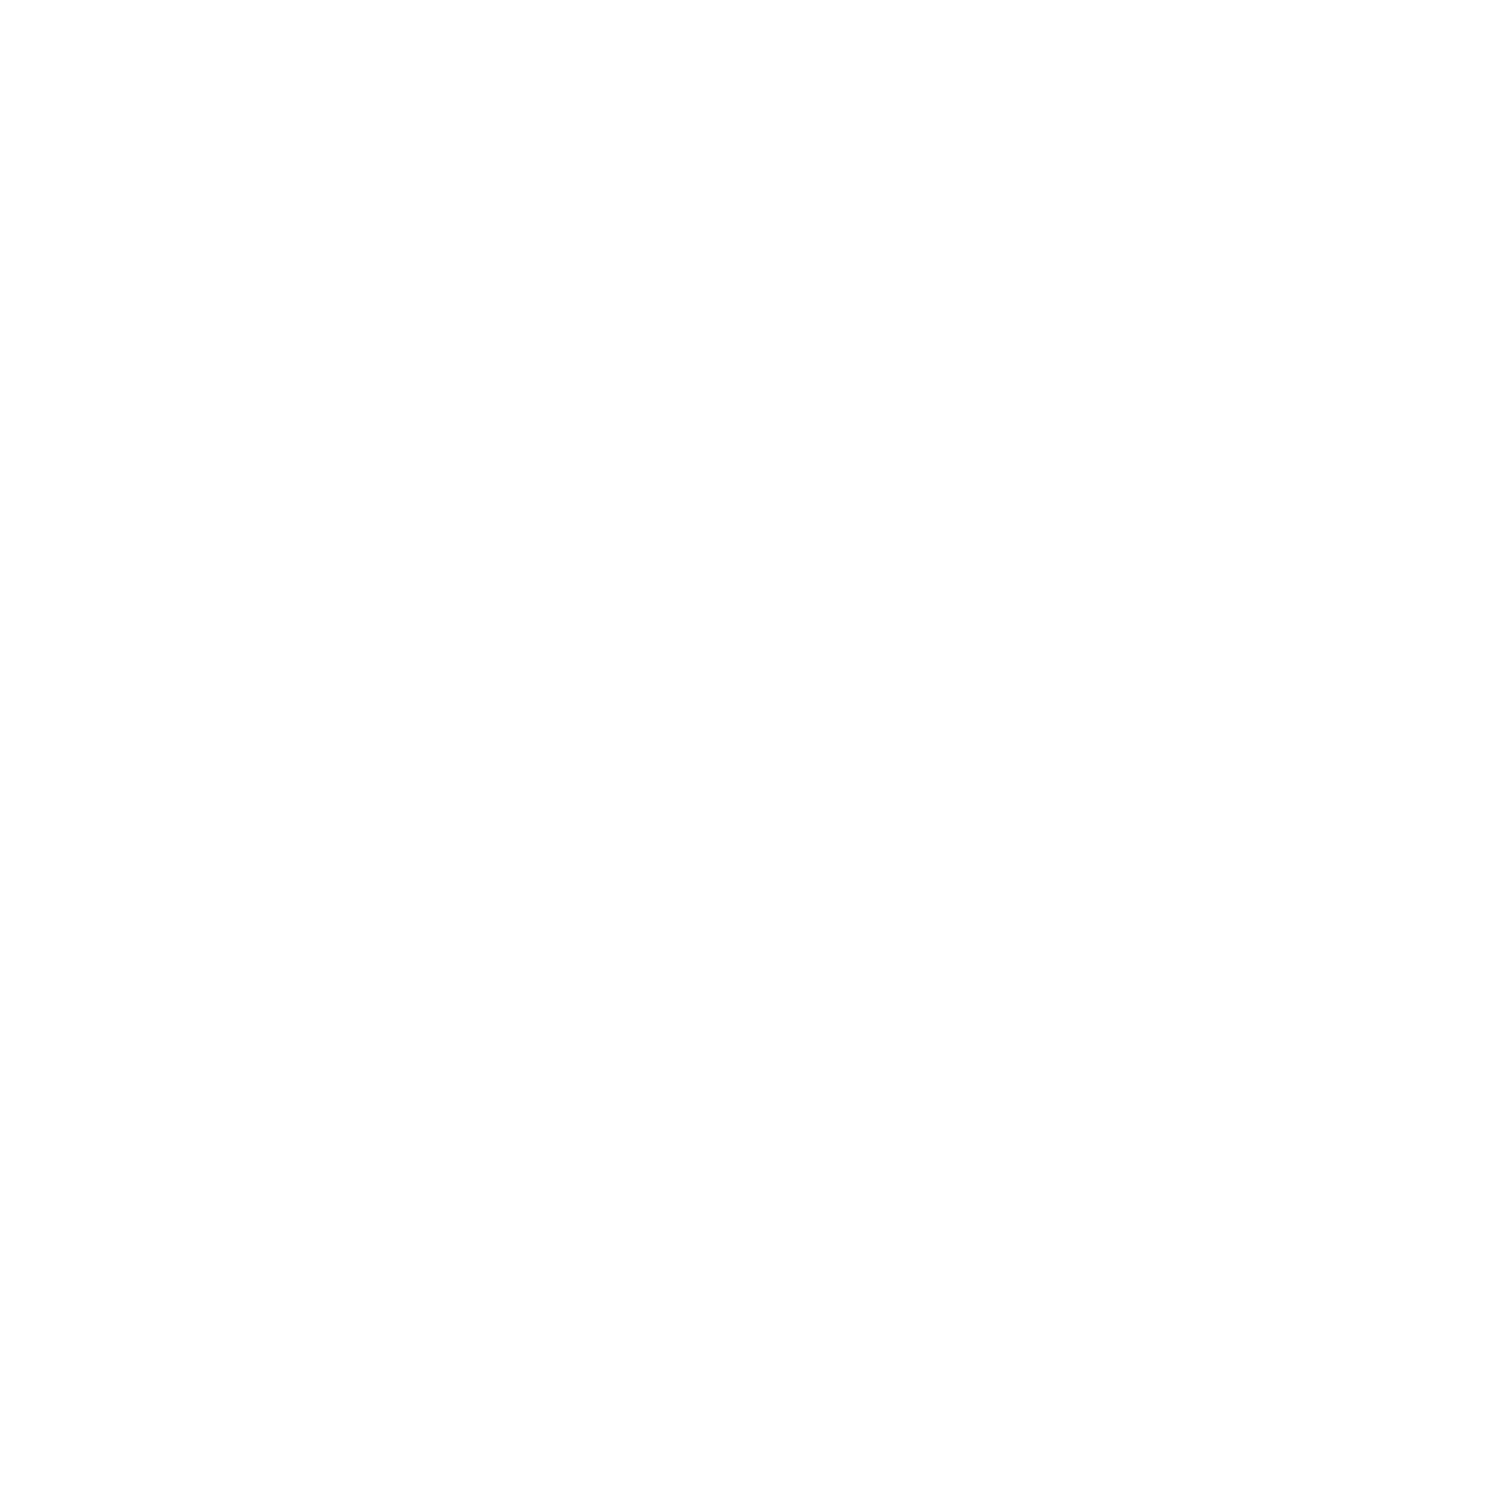 Cross Cultural Youth Project